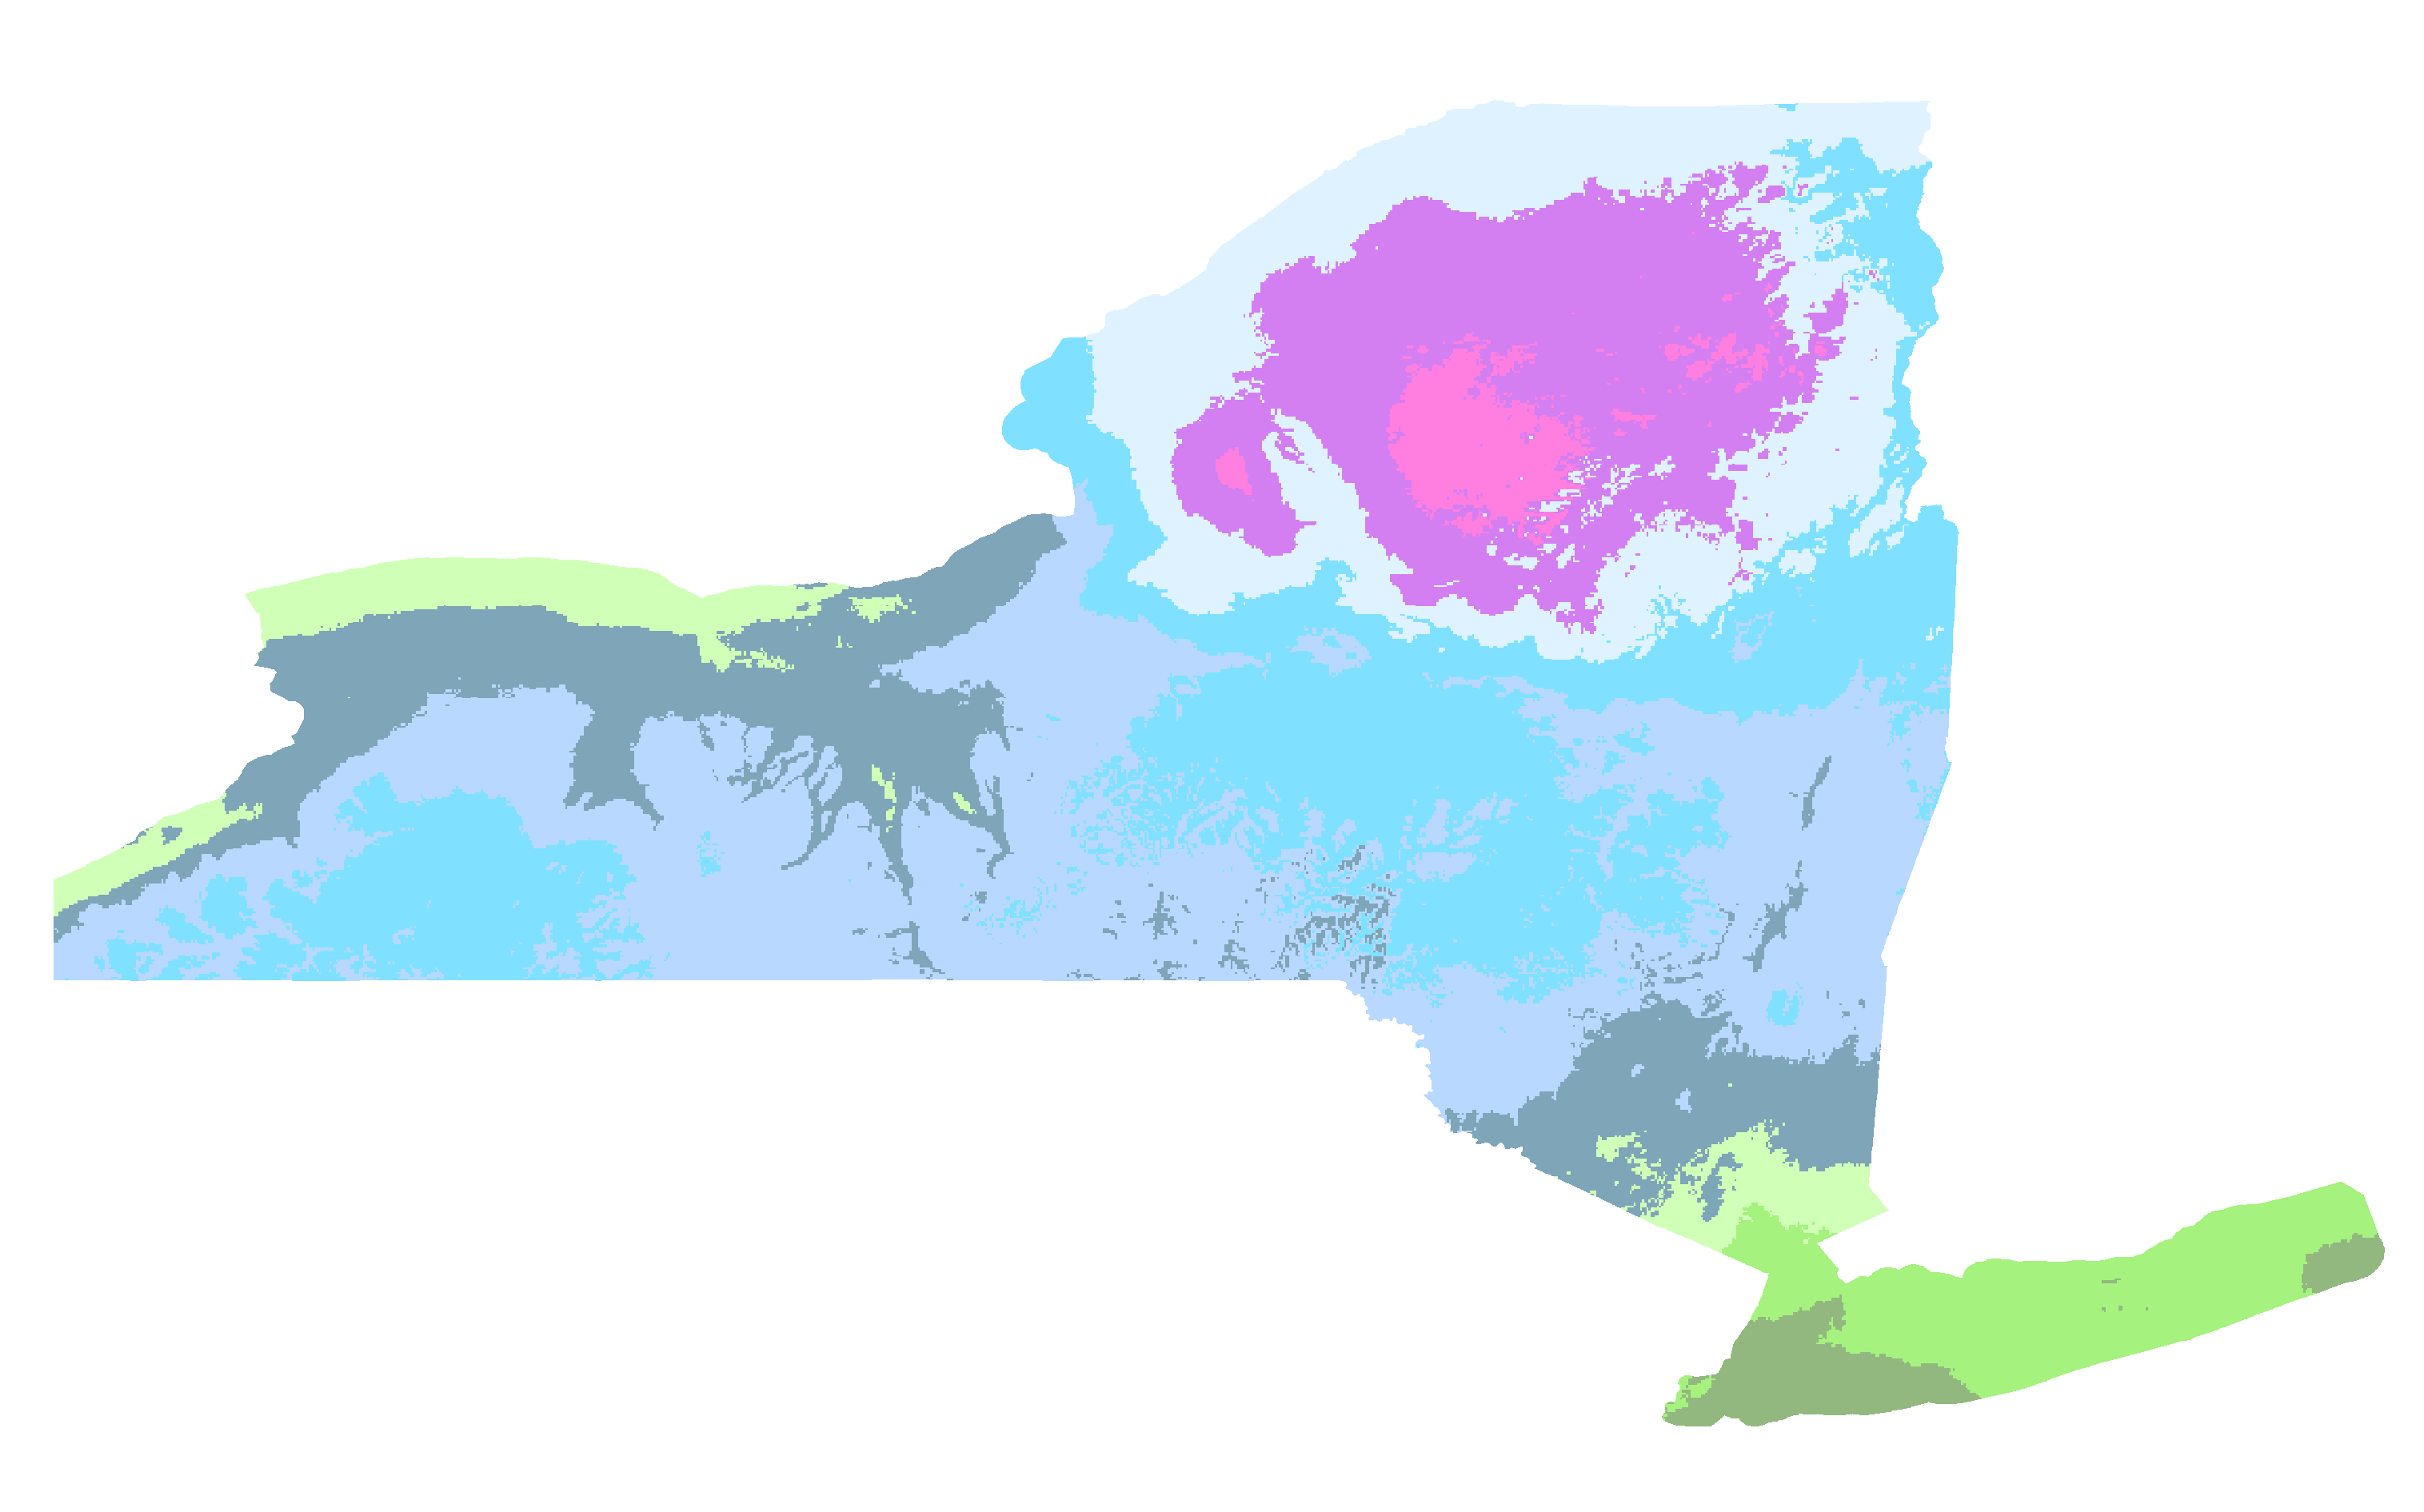 Parishville new york hardiness zones a hardiness zone is a geographically defined area in which a specific category of plant life is capable of growing as defined by climatic conditions publicscrutiny Choice Image